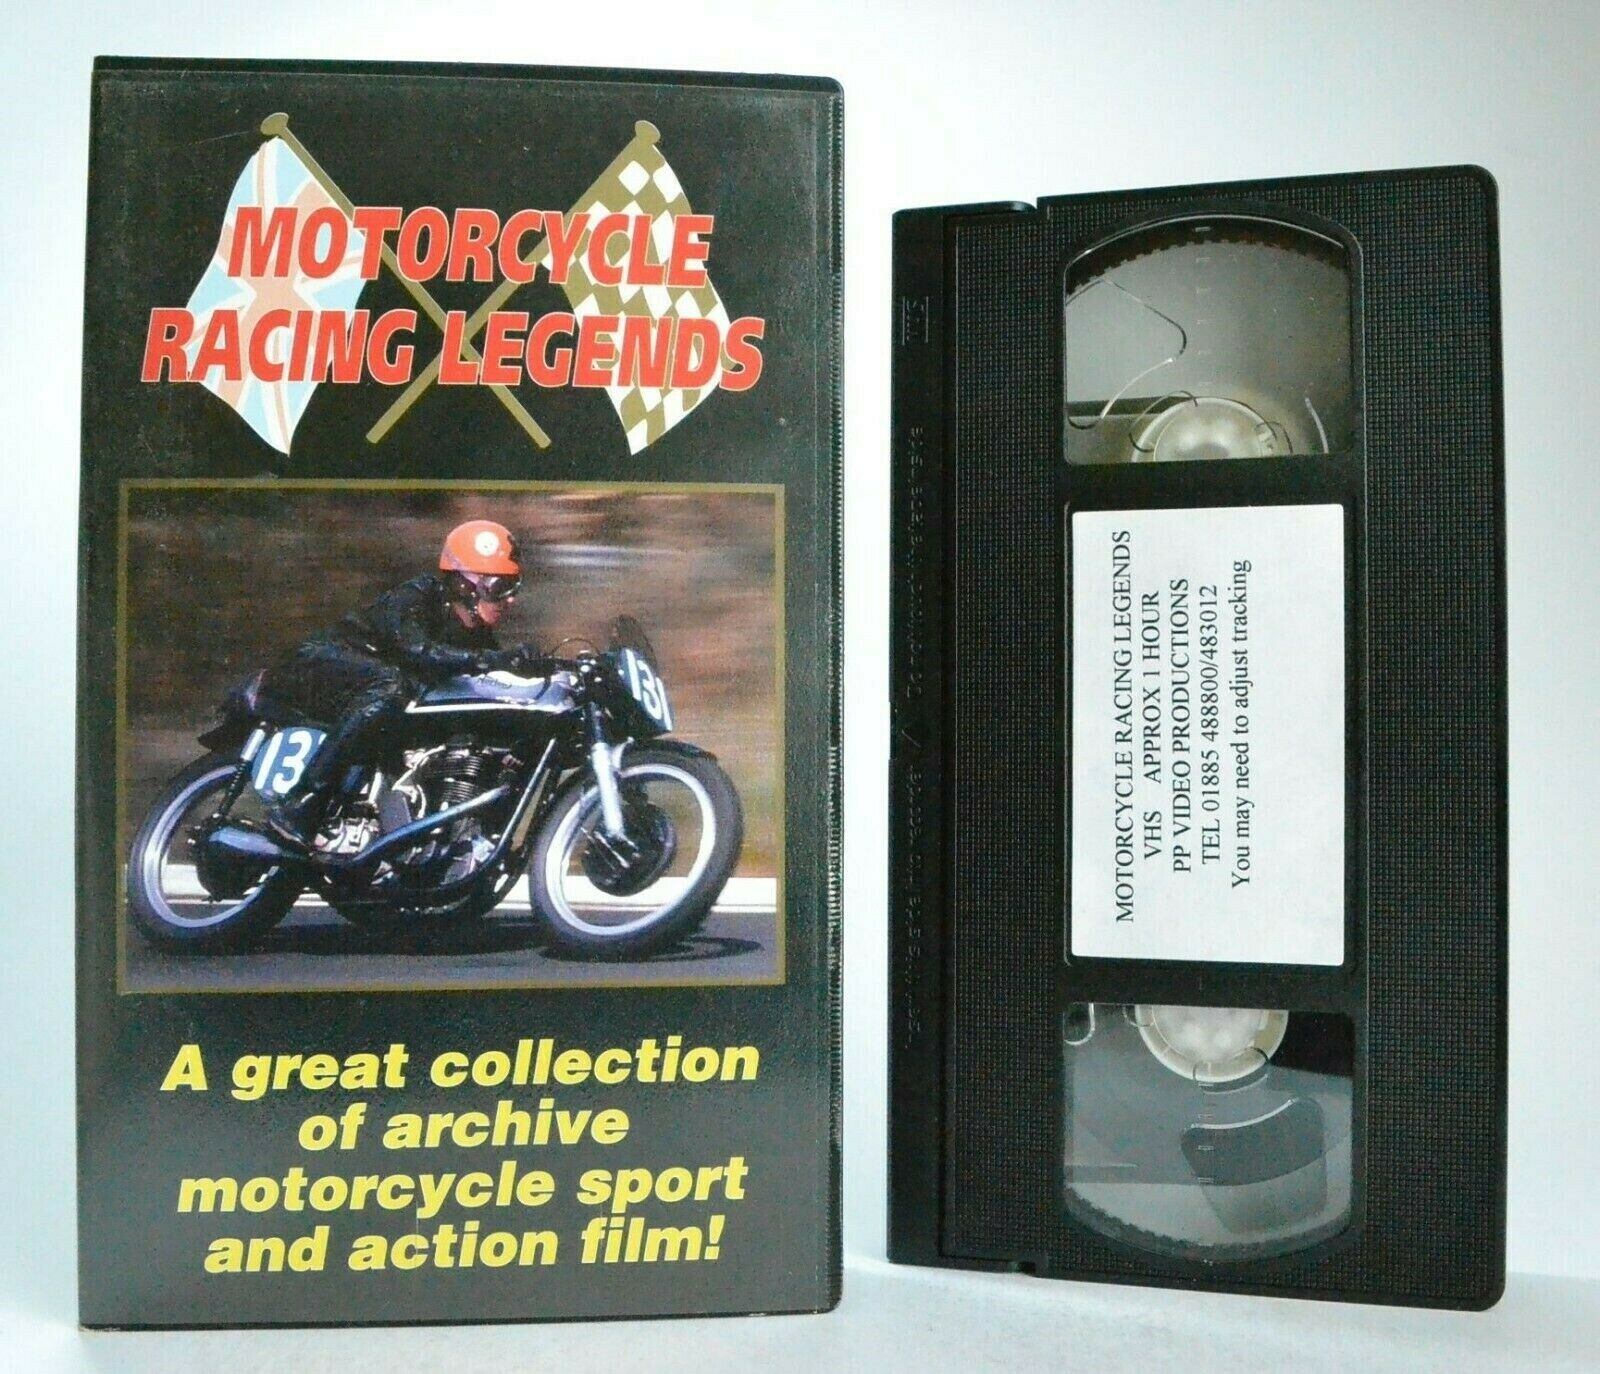 Motorcycle Racing Legends: Vintage Motorcycling Vol.1 - Motorsports - Pal VHS